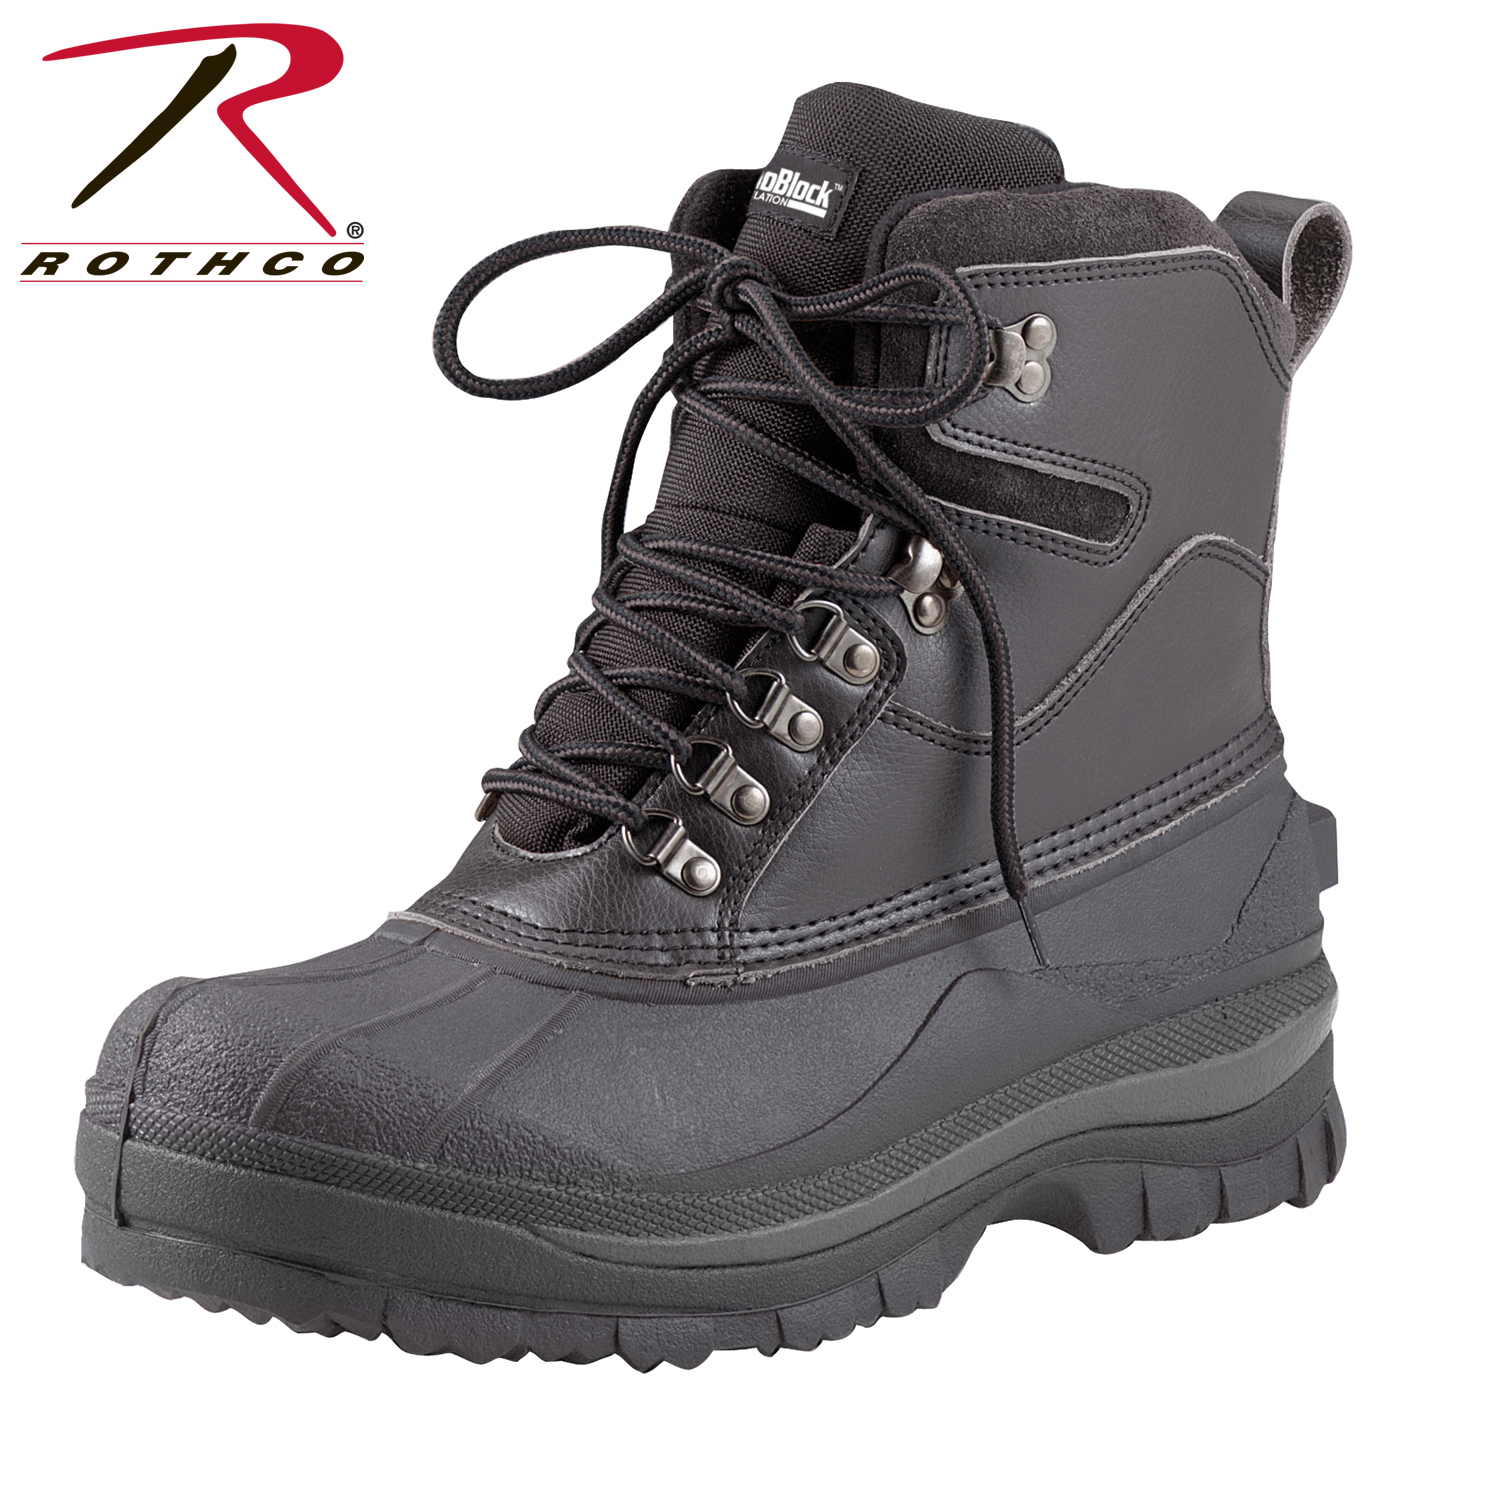 Rothco Cold Weather Hiking Boots